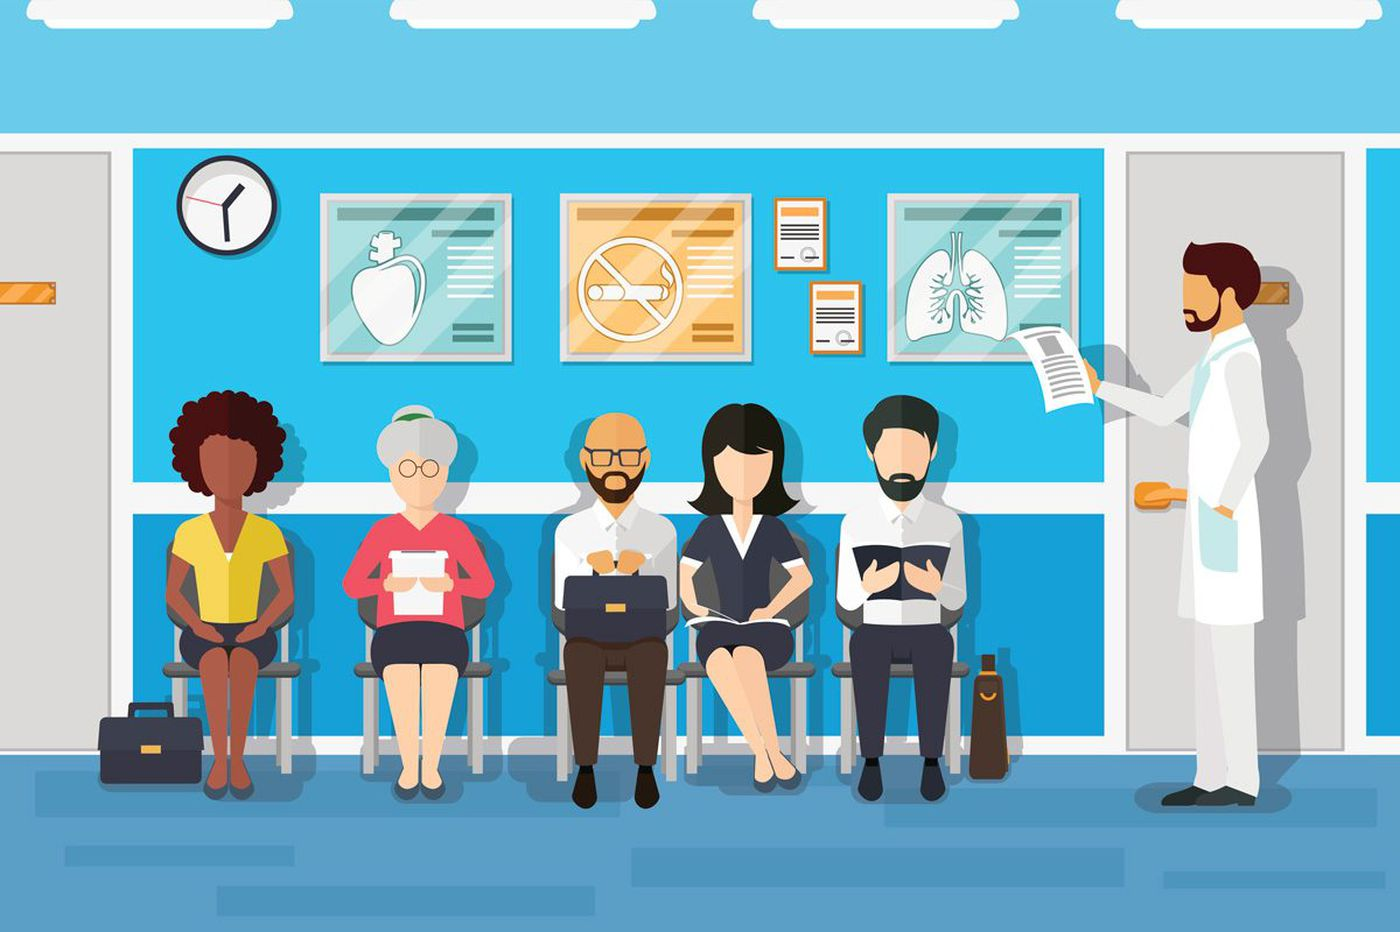 How patients can make sure their doctor's office respects them